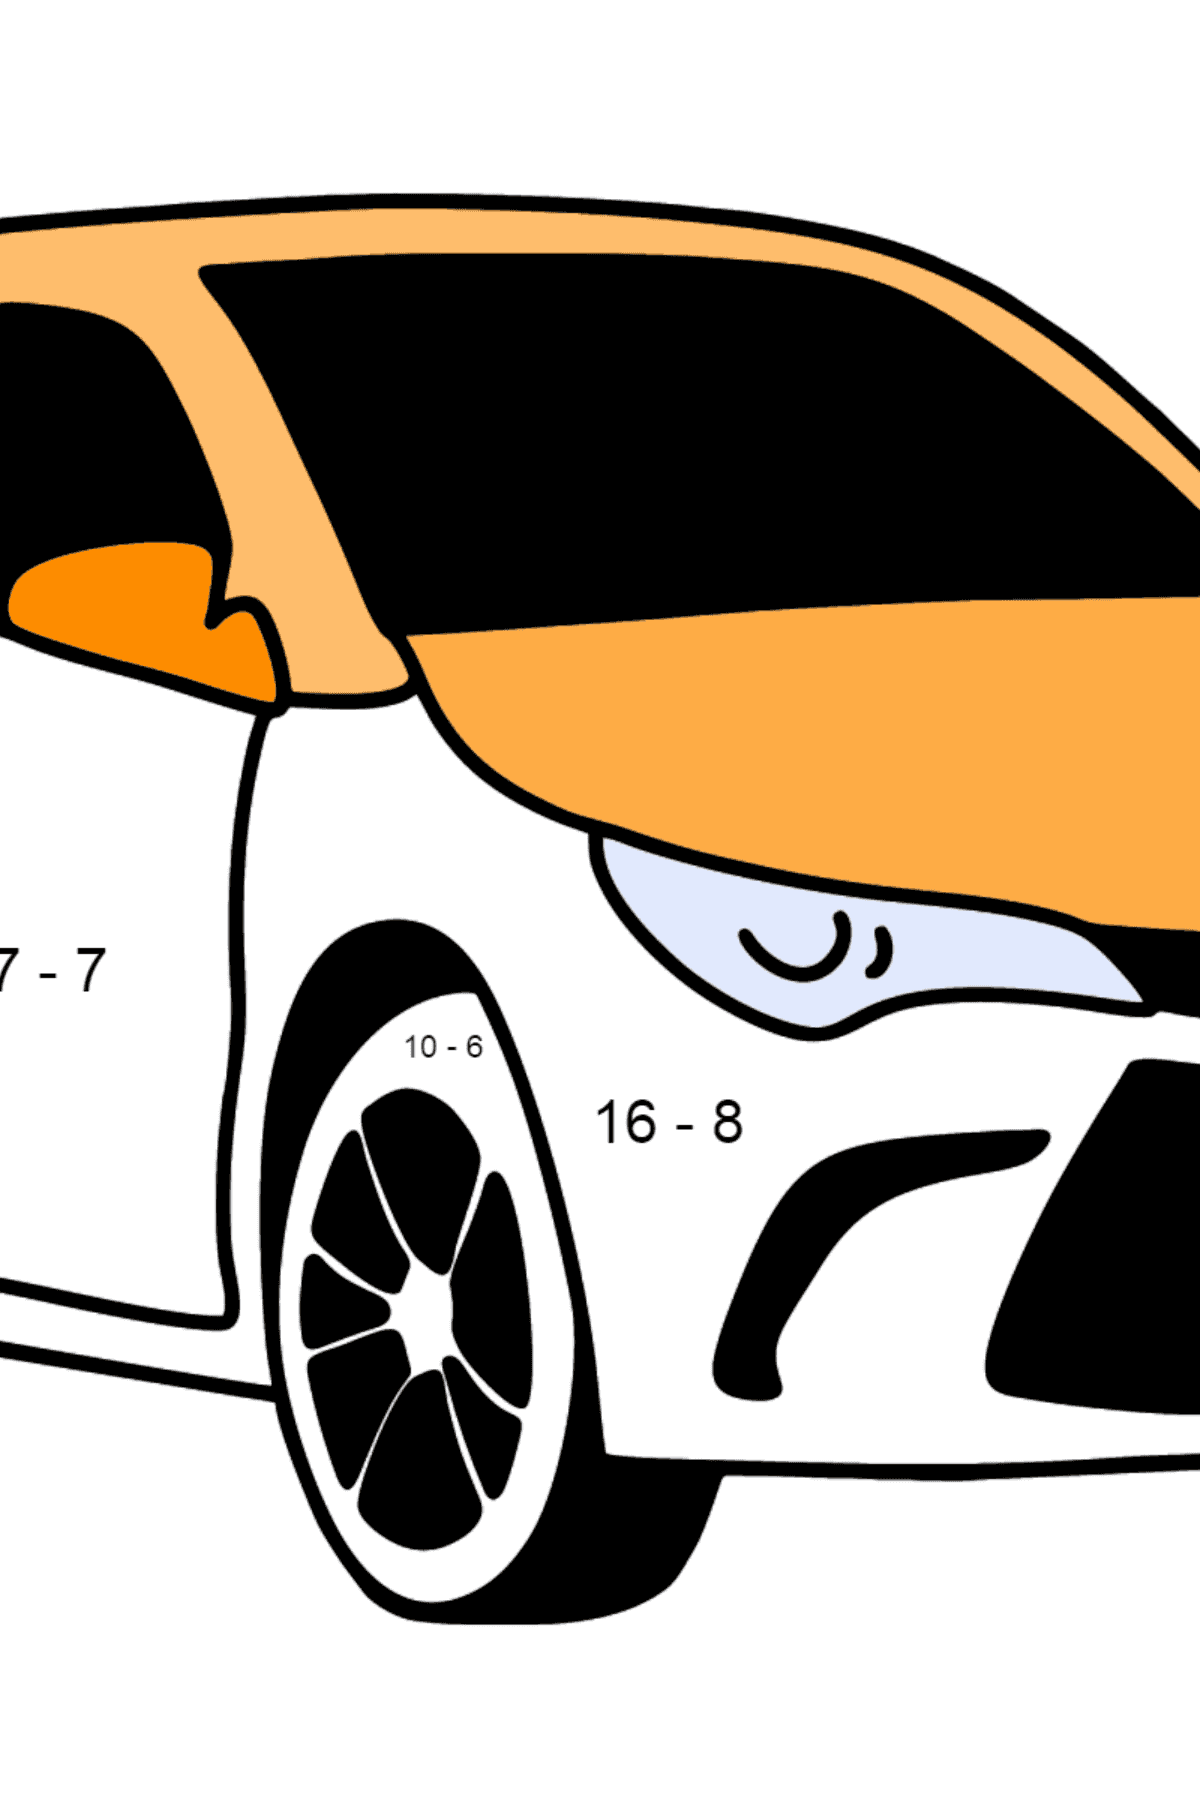 Toyota Camry coloring page - Math Coloring - Subtraction for Kids